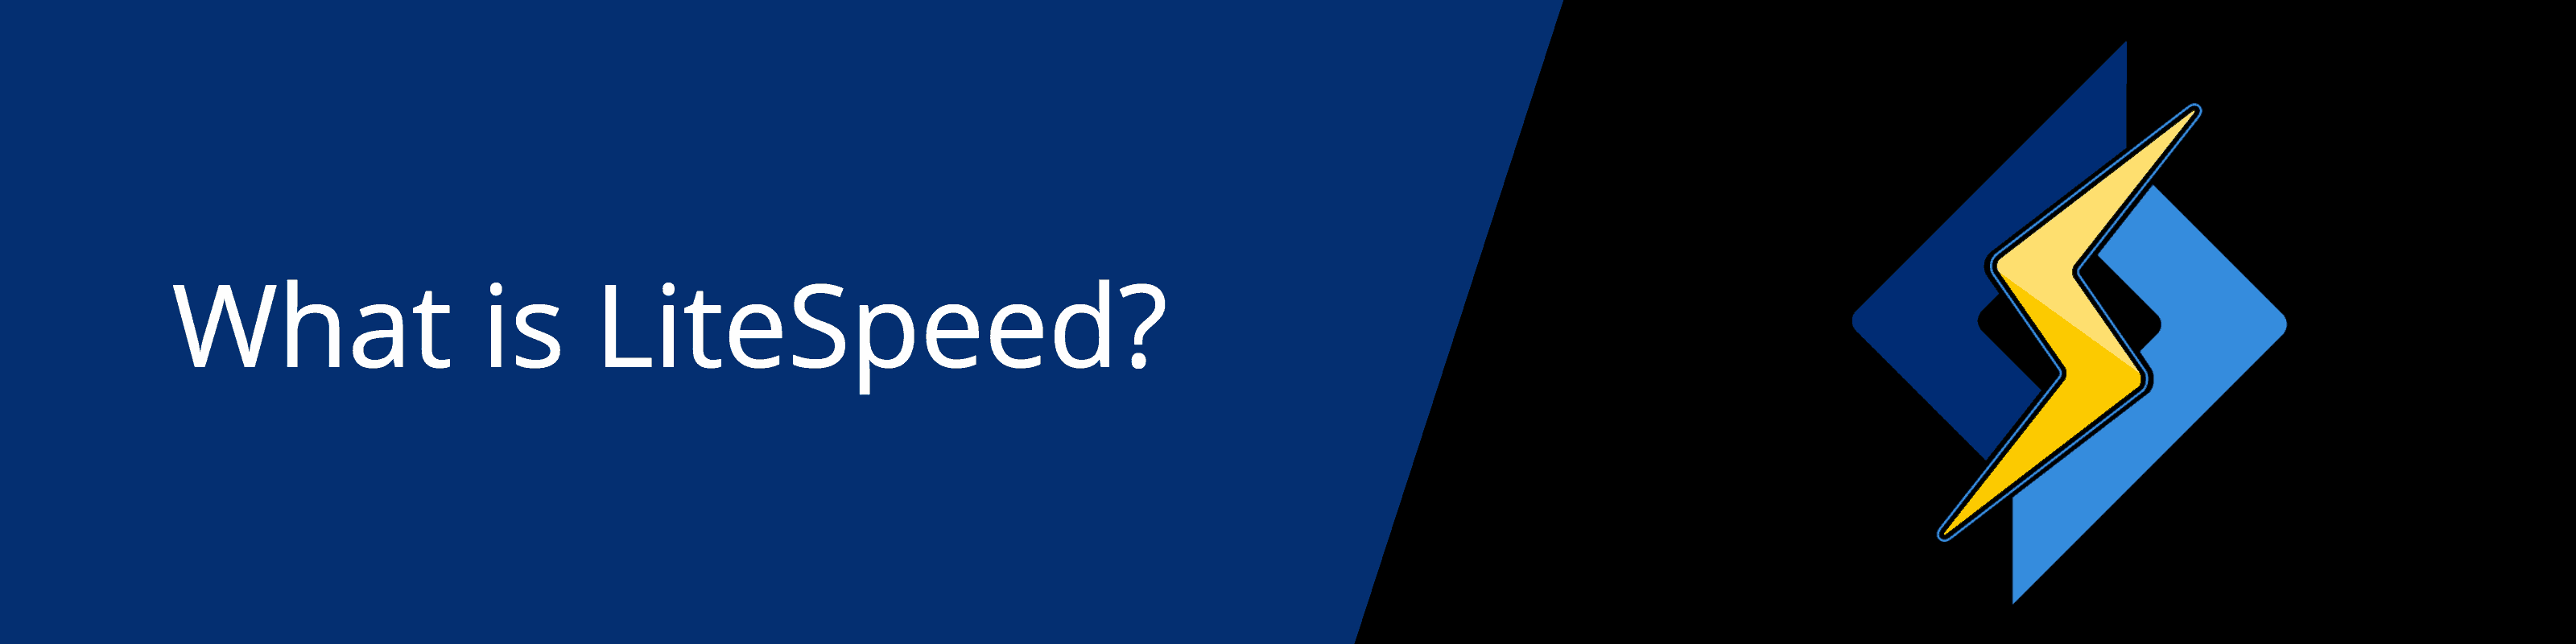 what is litespeed